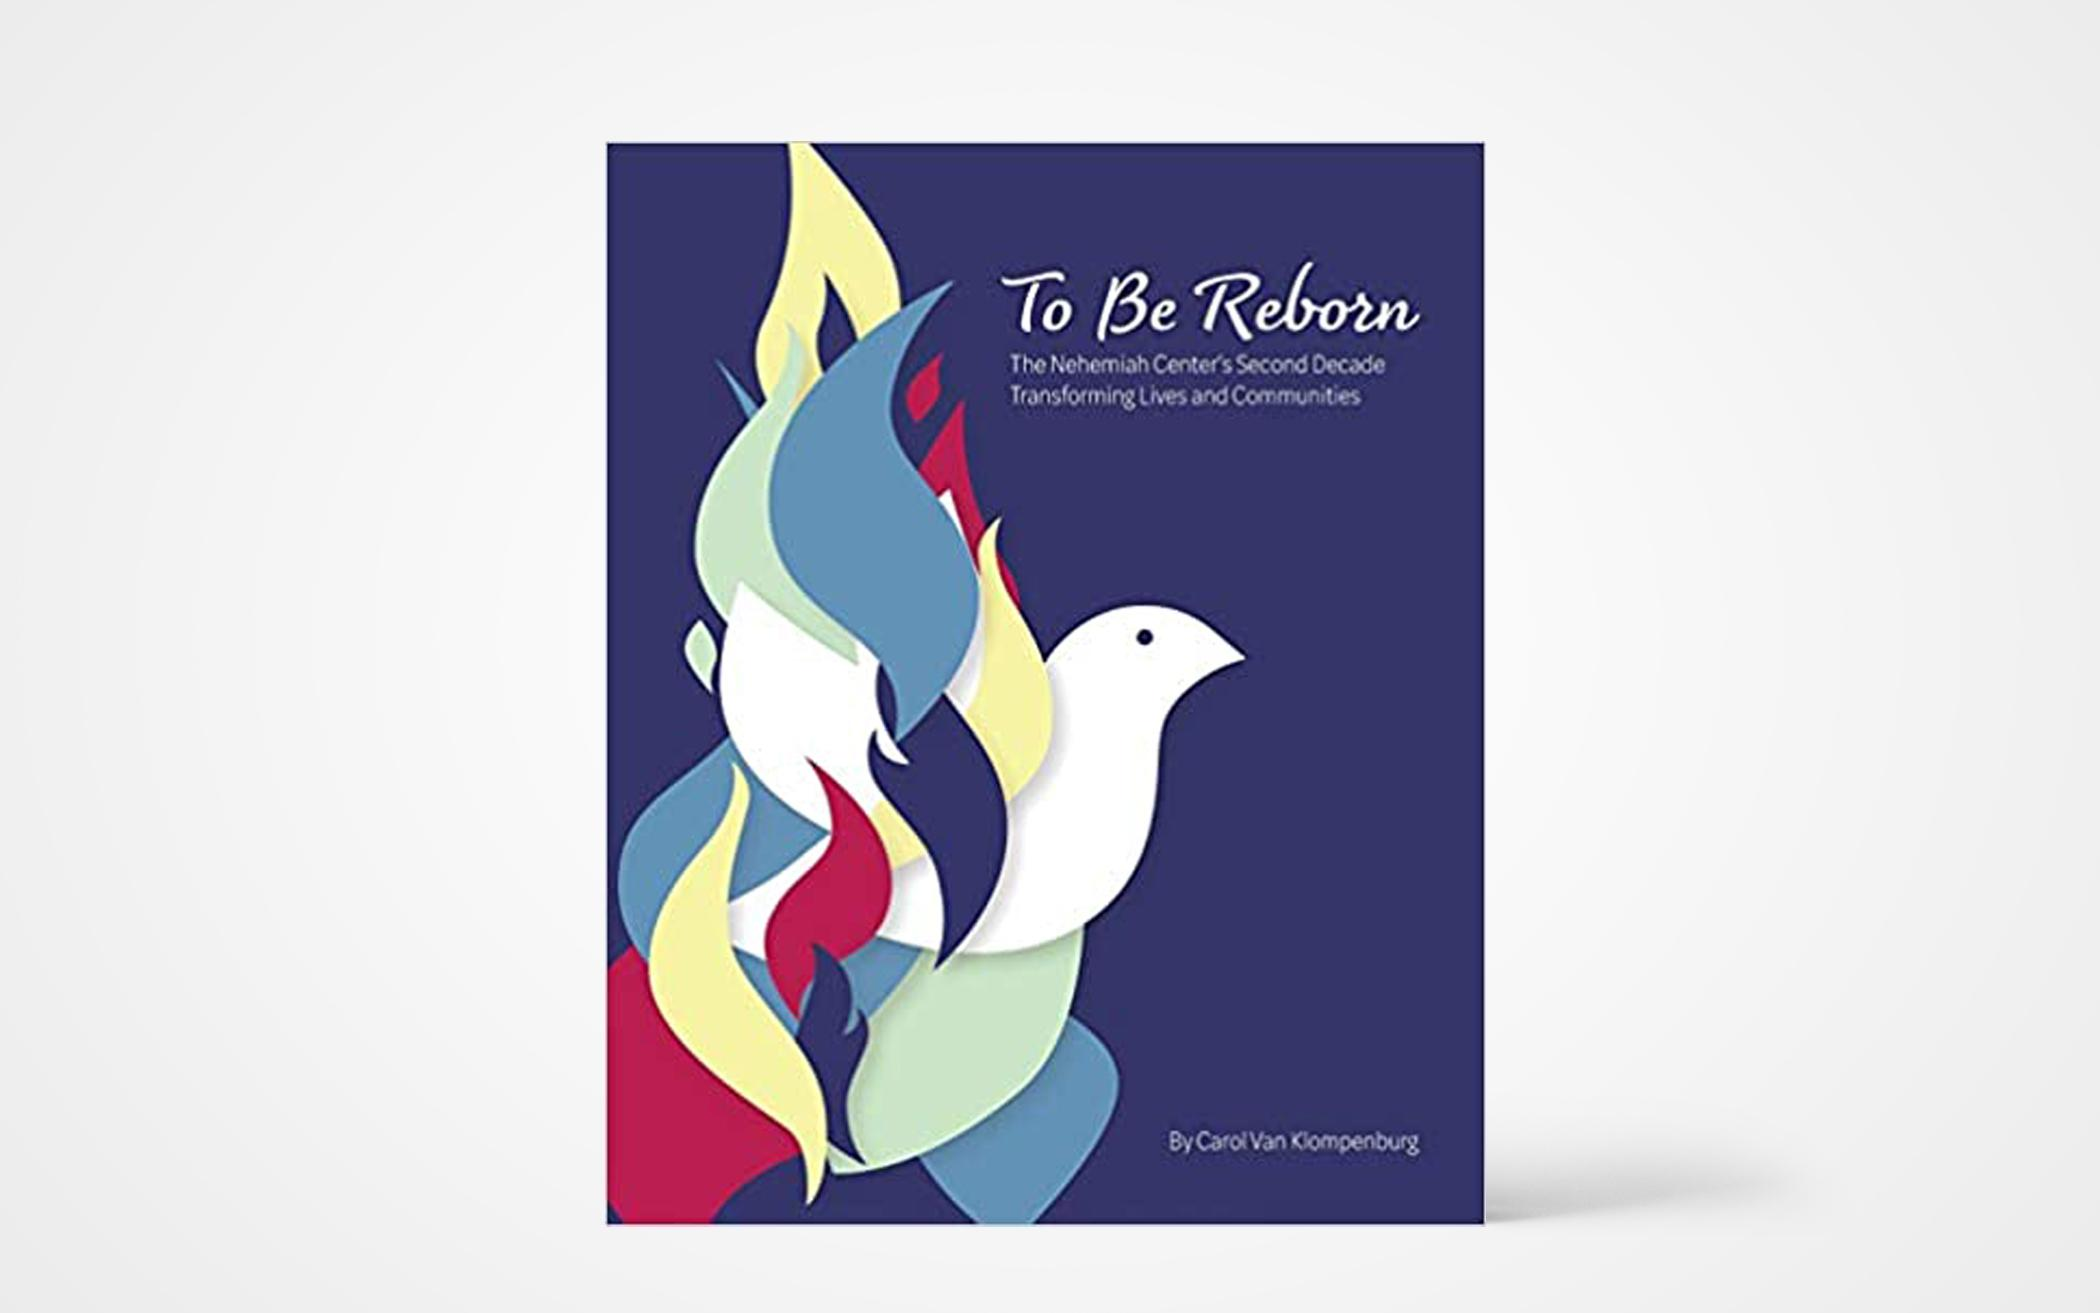 To Be Reborn